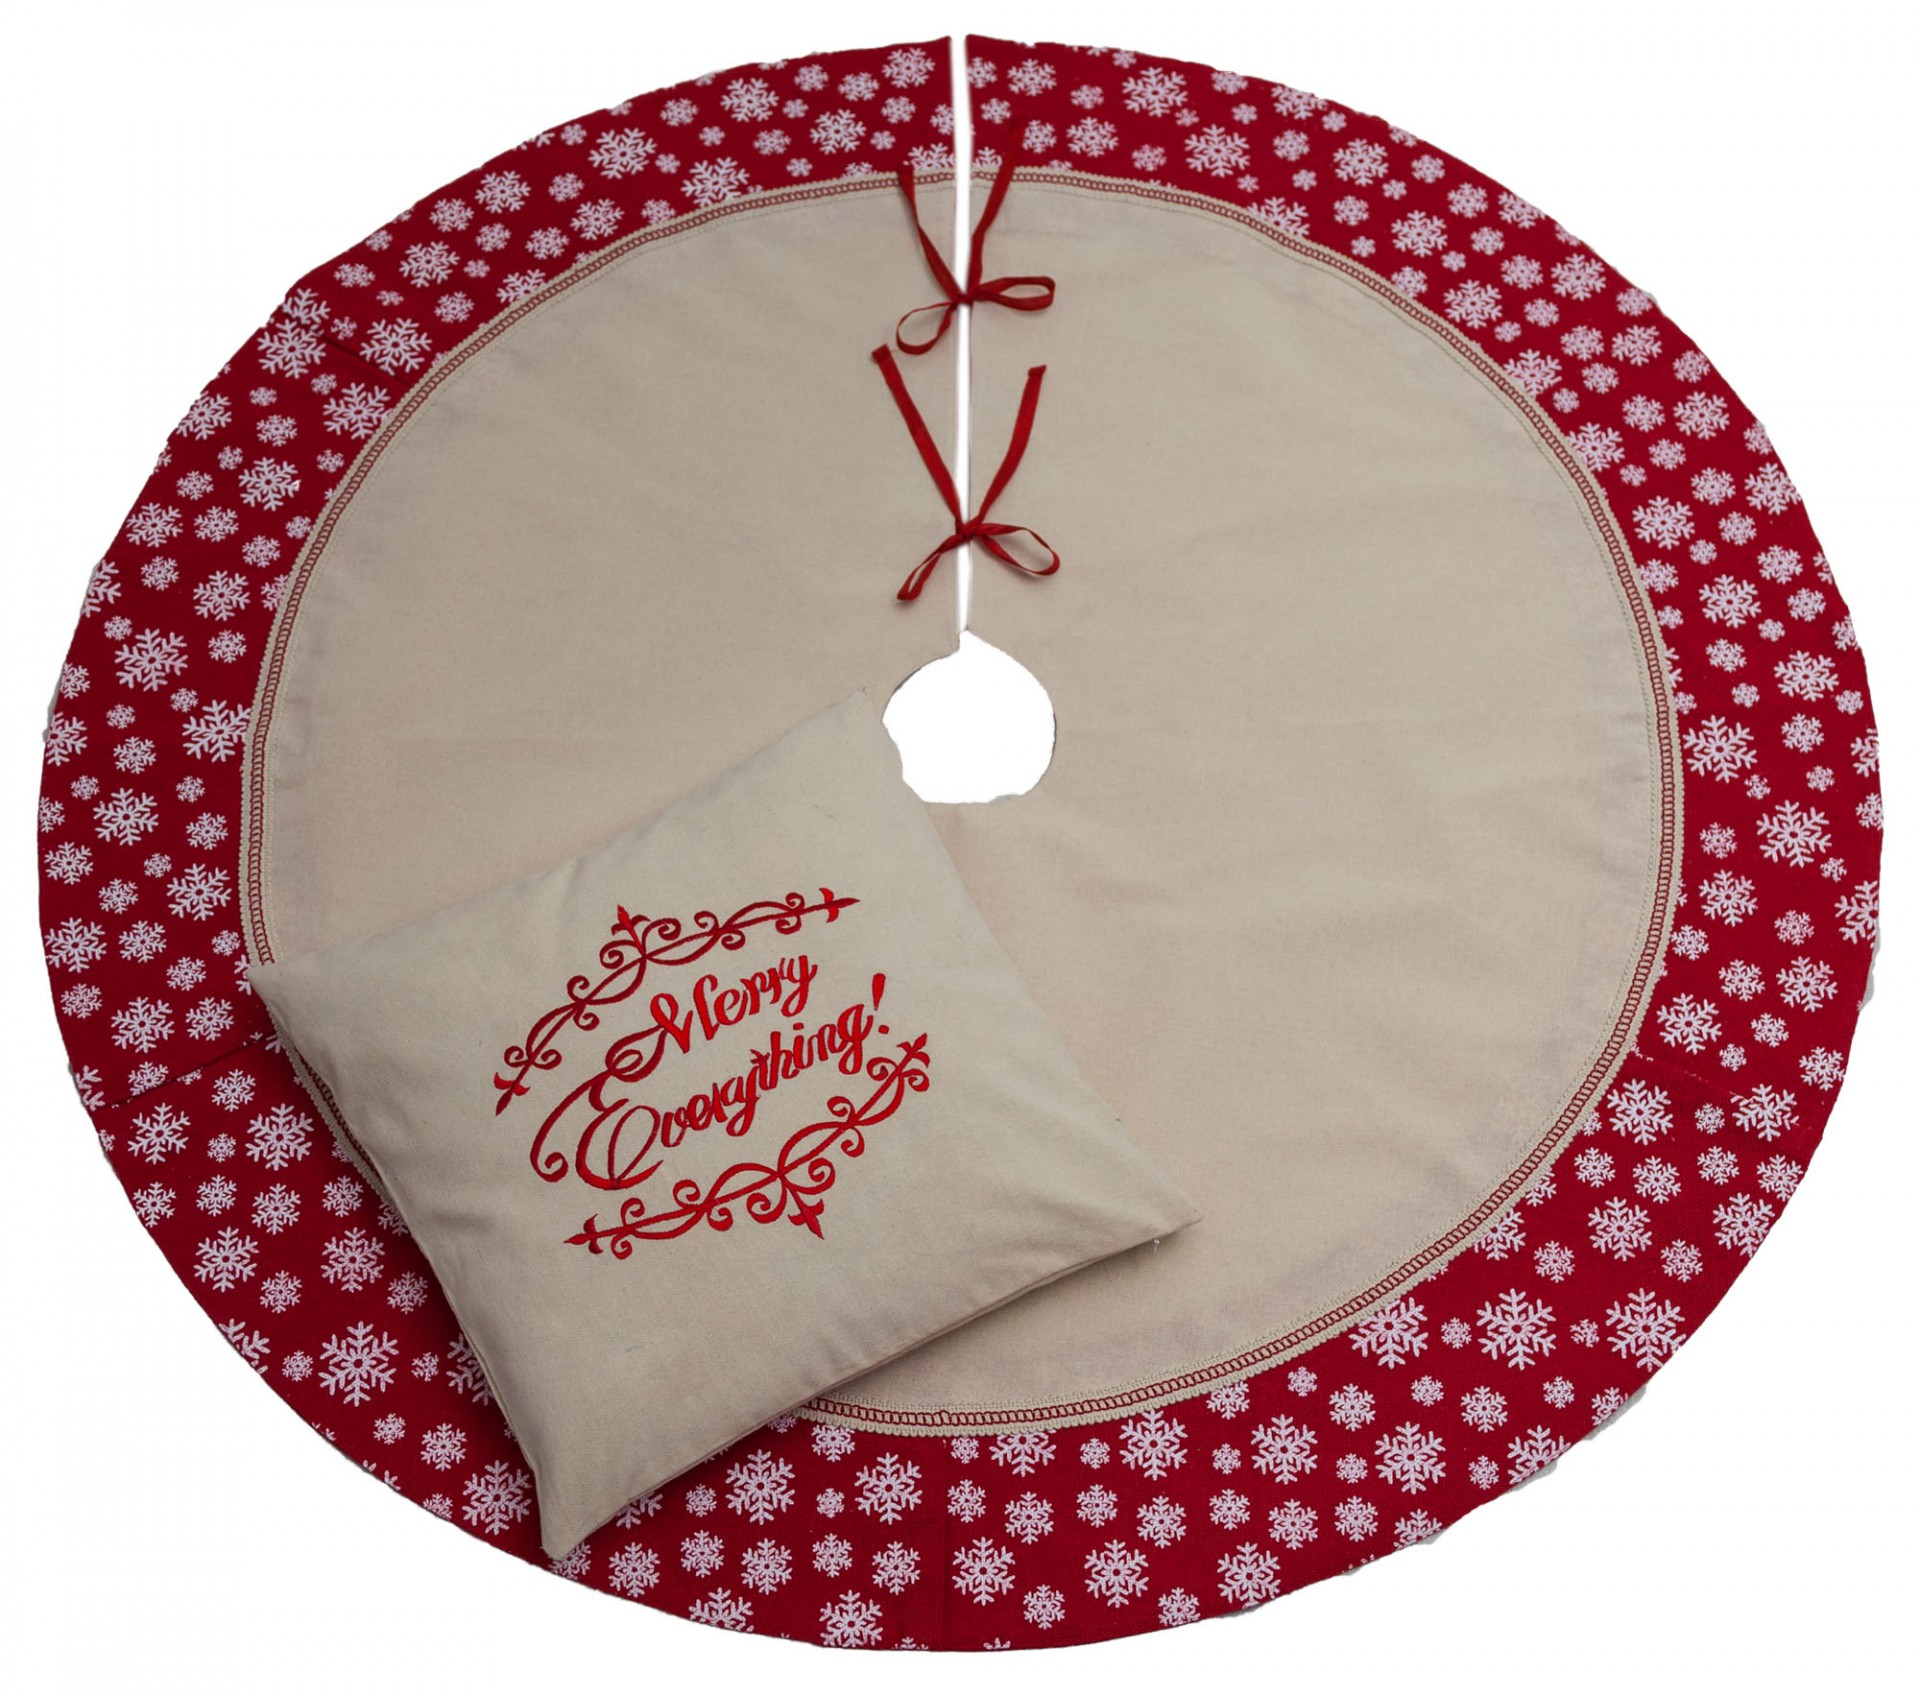 Merry Everything cushion